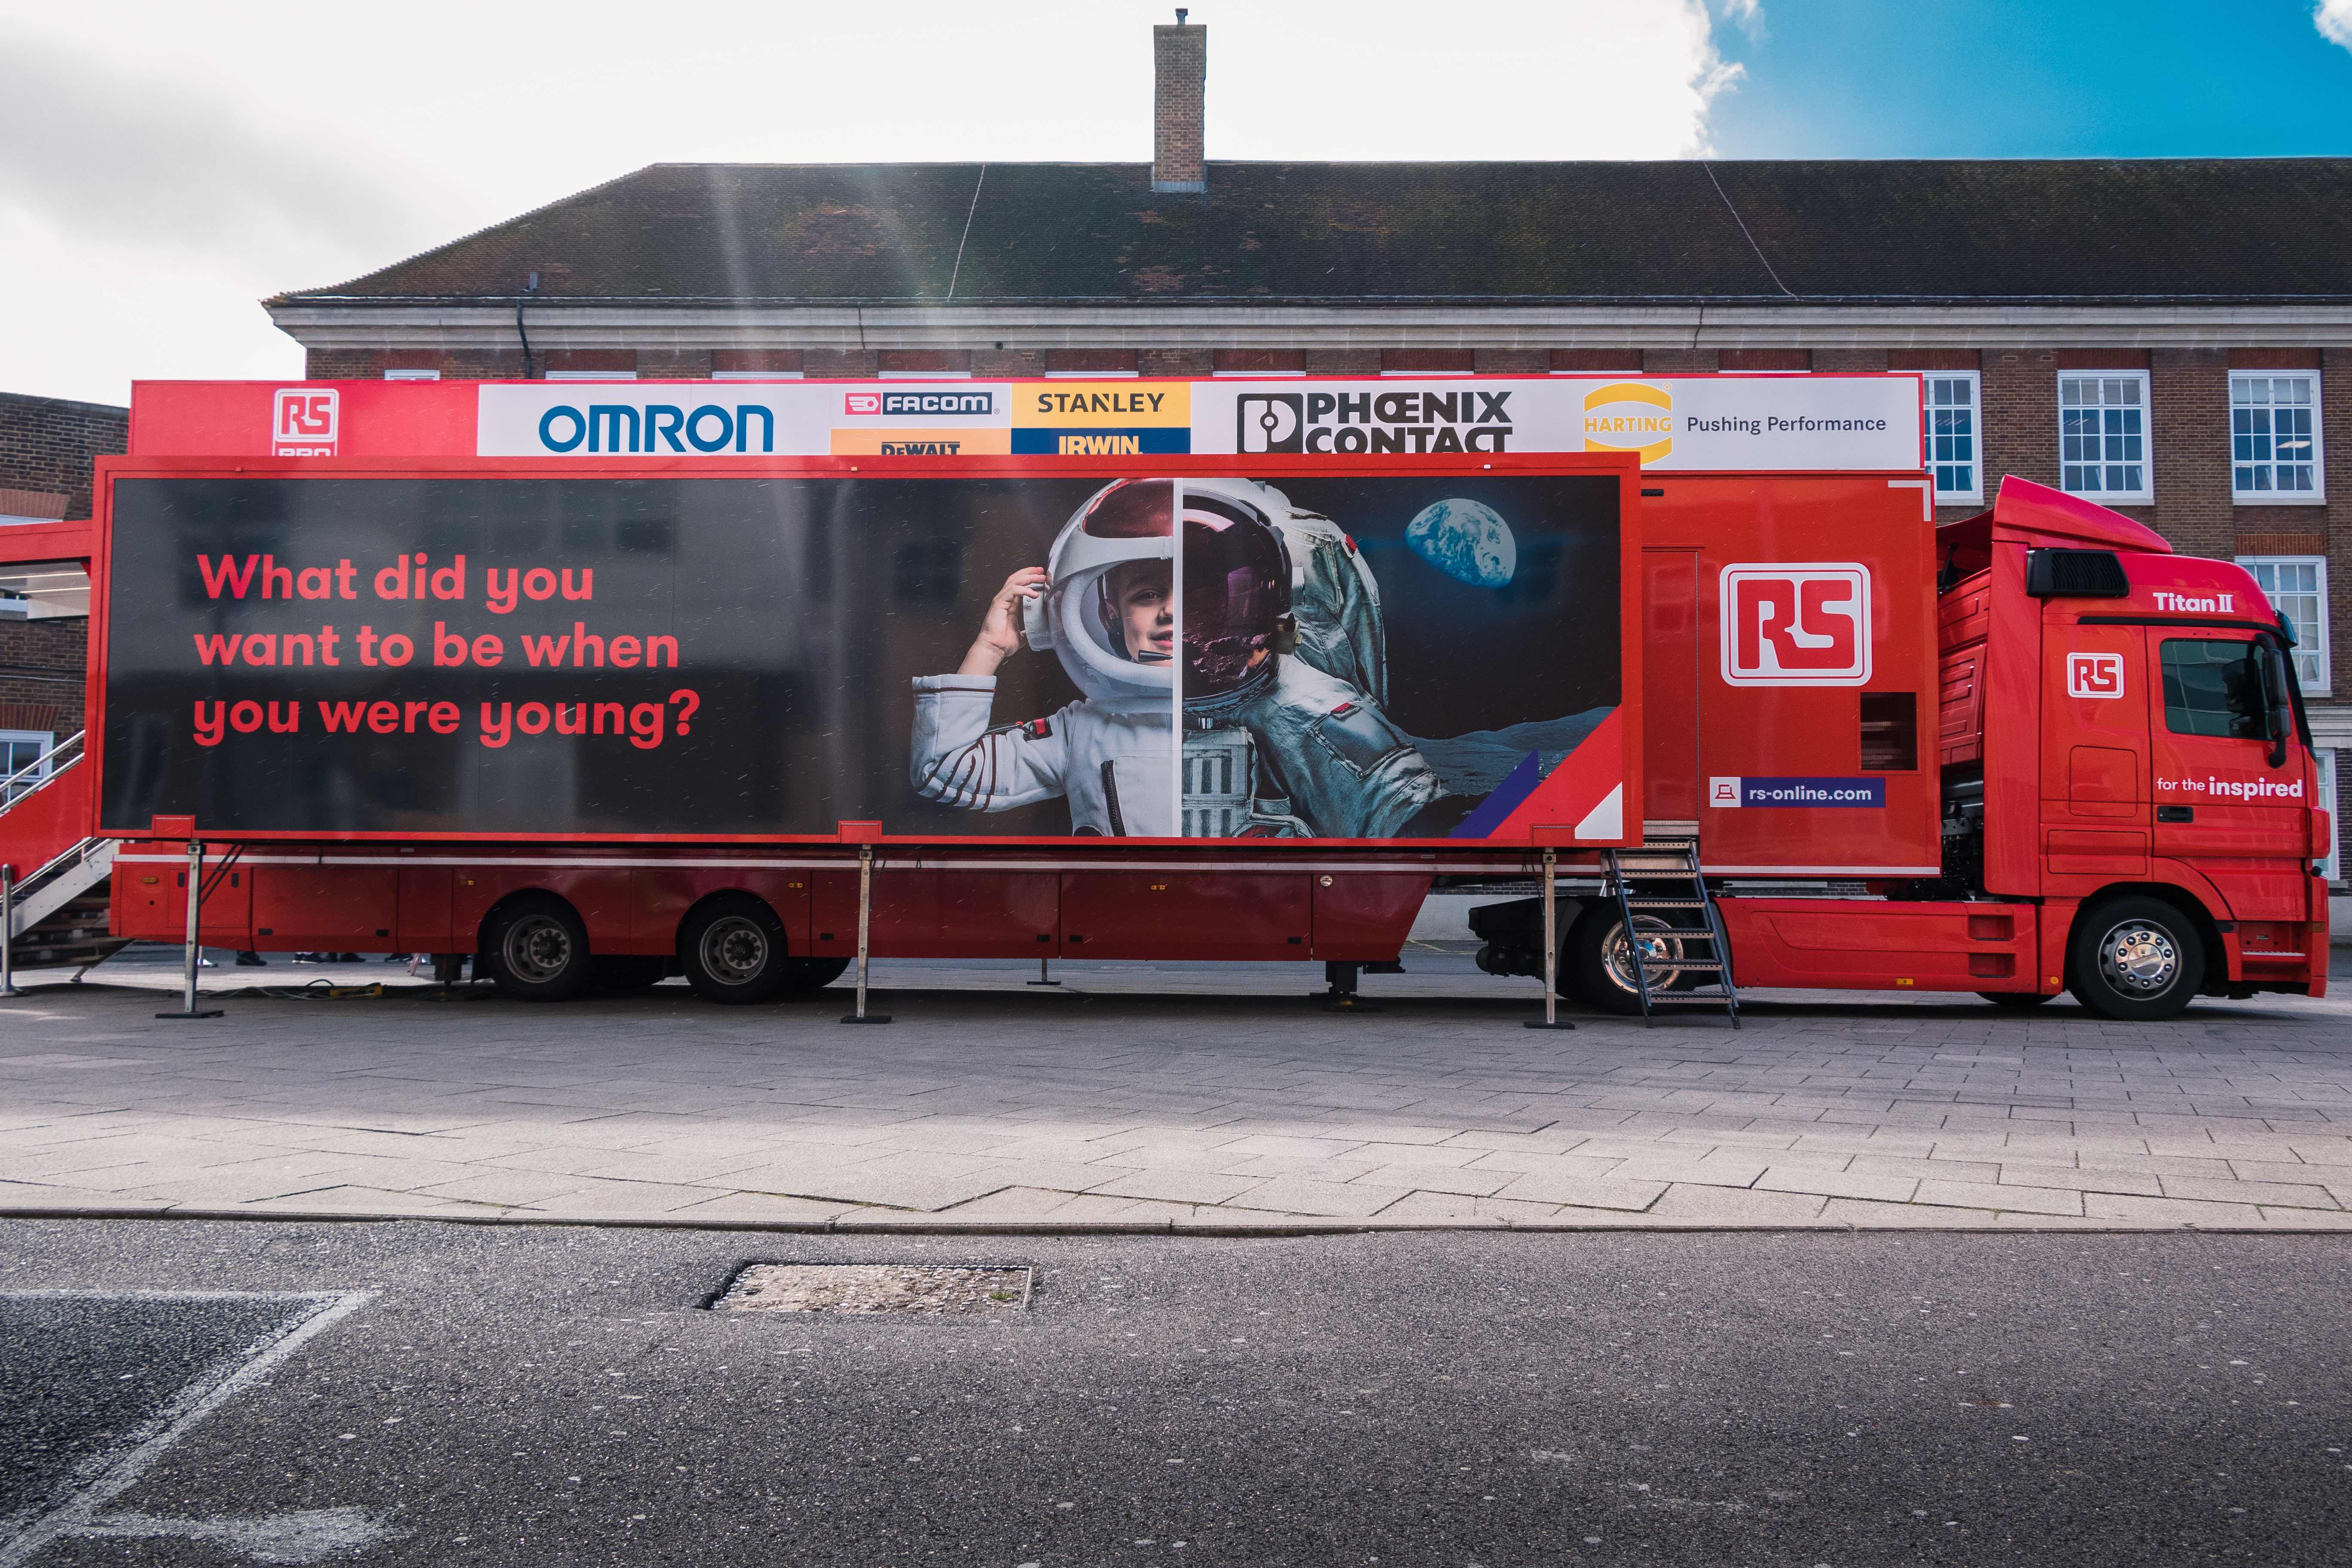 Titan II truck among new attractions at MDX STEM Festival for British Science Week